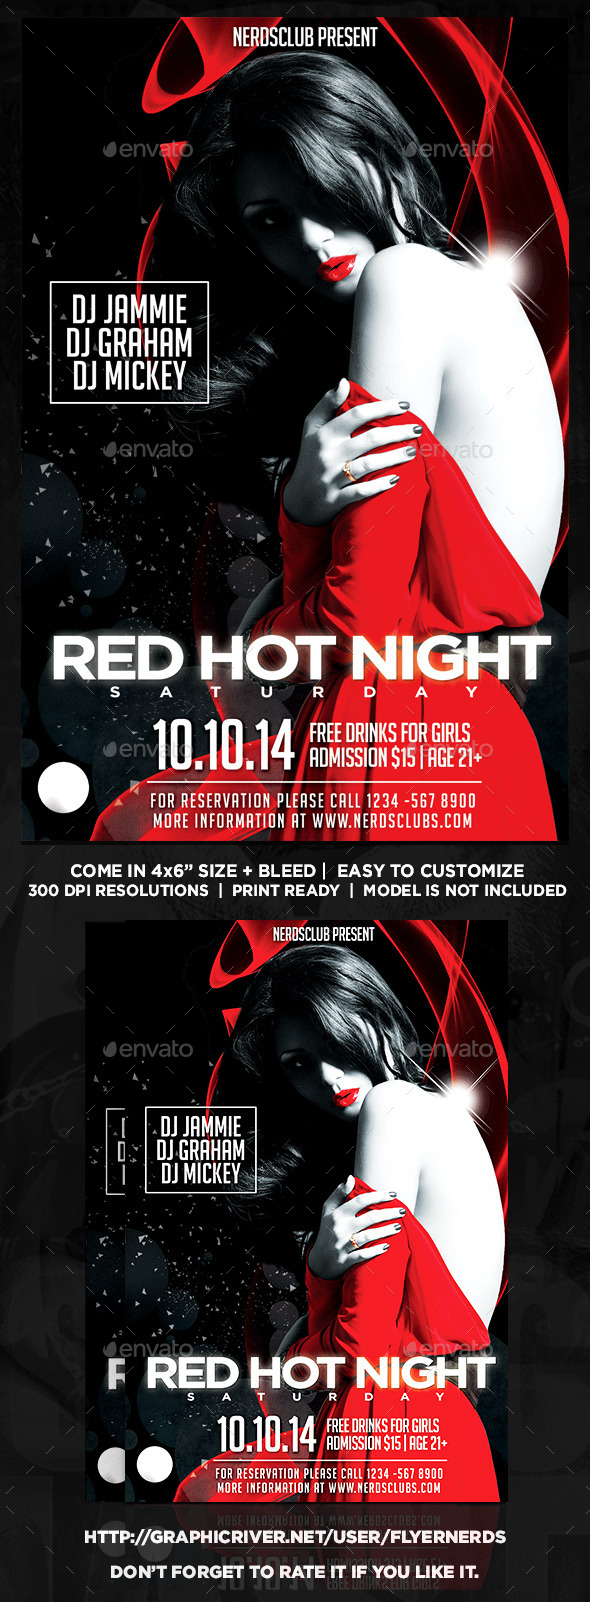 Red Hot Night Party Flyer - Clubs & Parties Events